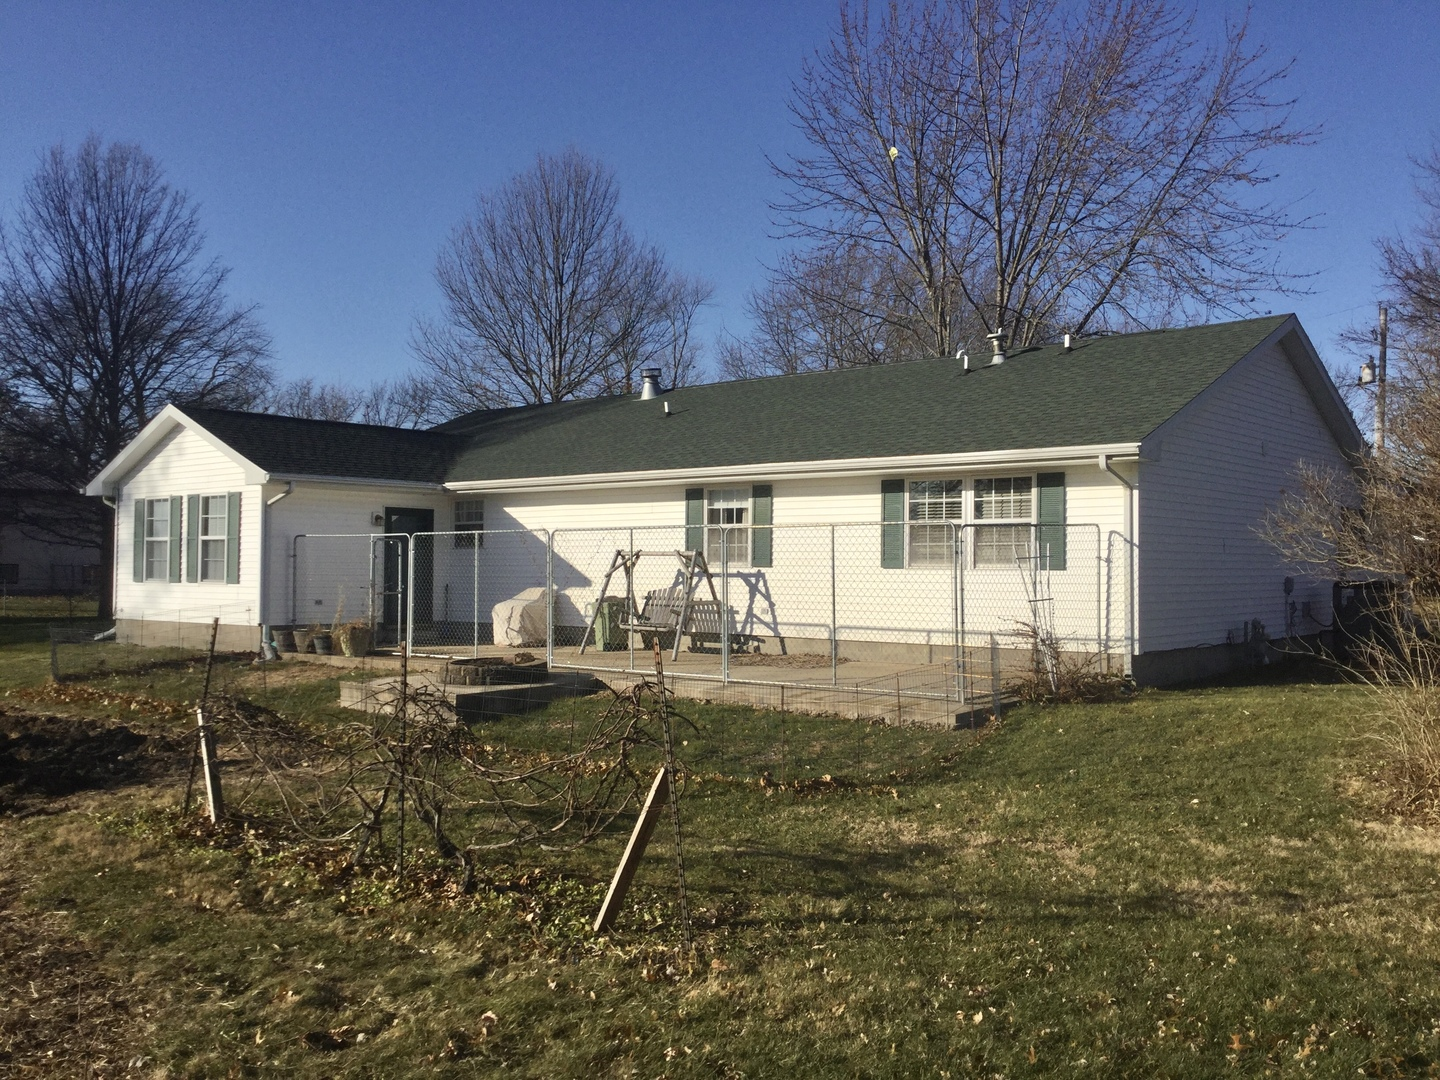 195 East Ash, Atwood, Illinois, 61913